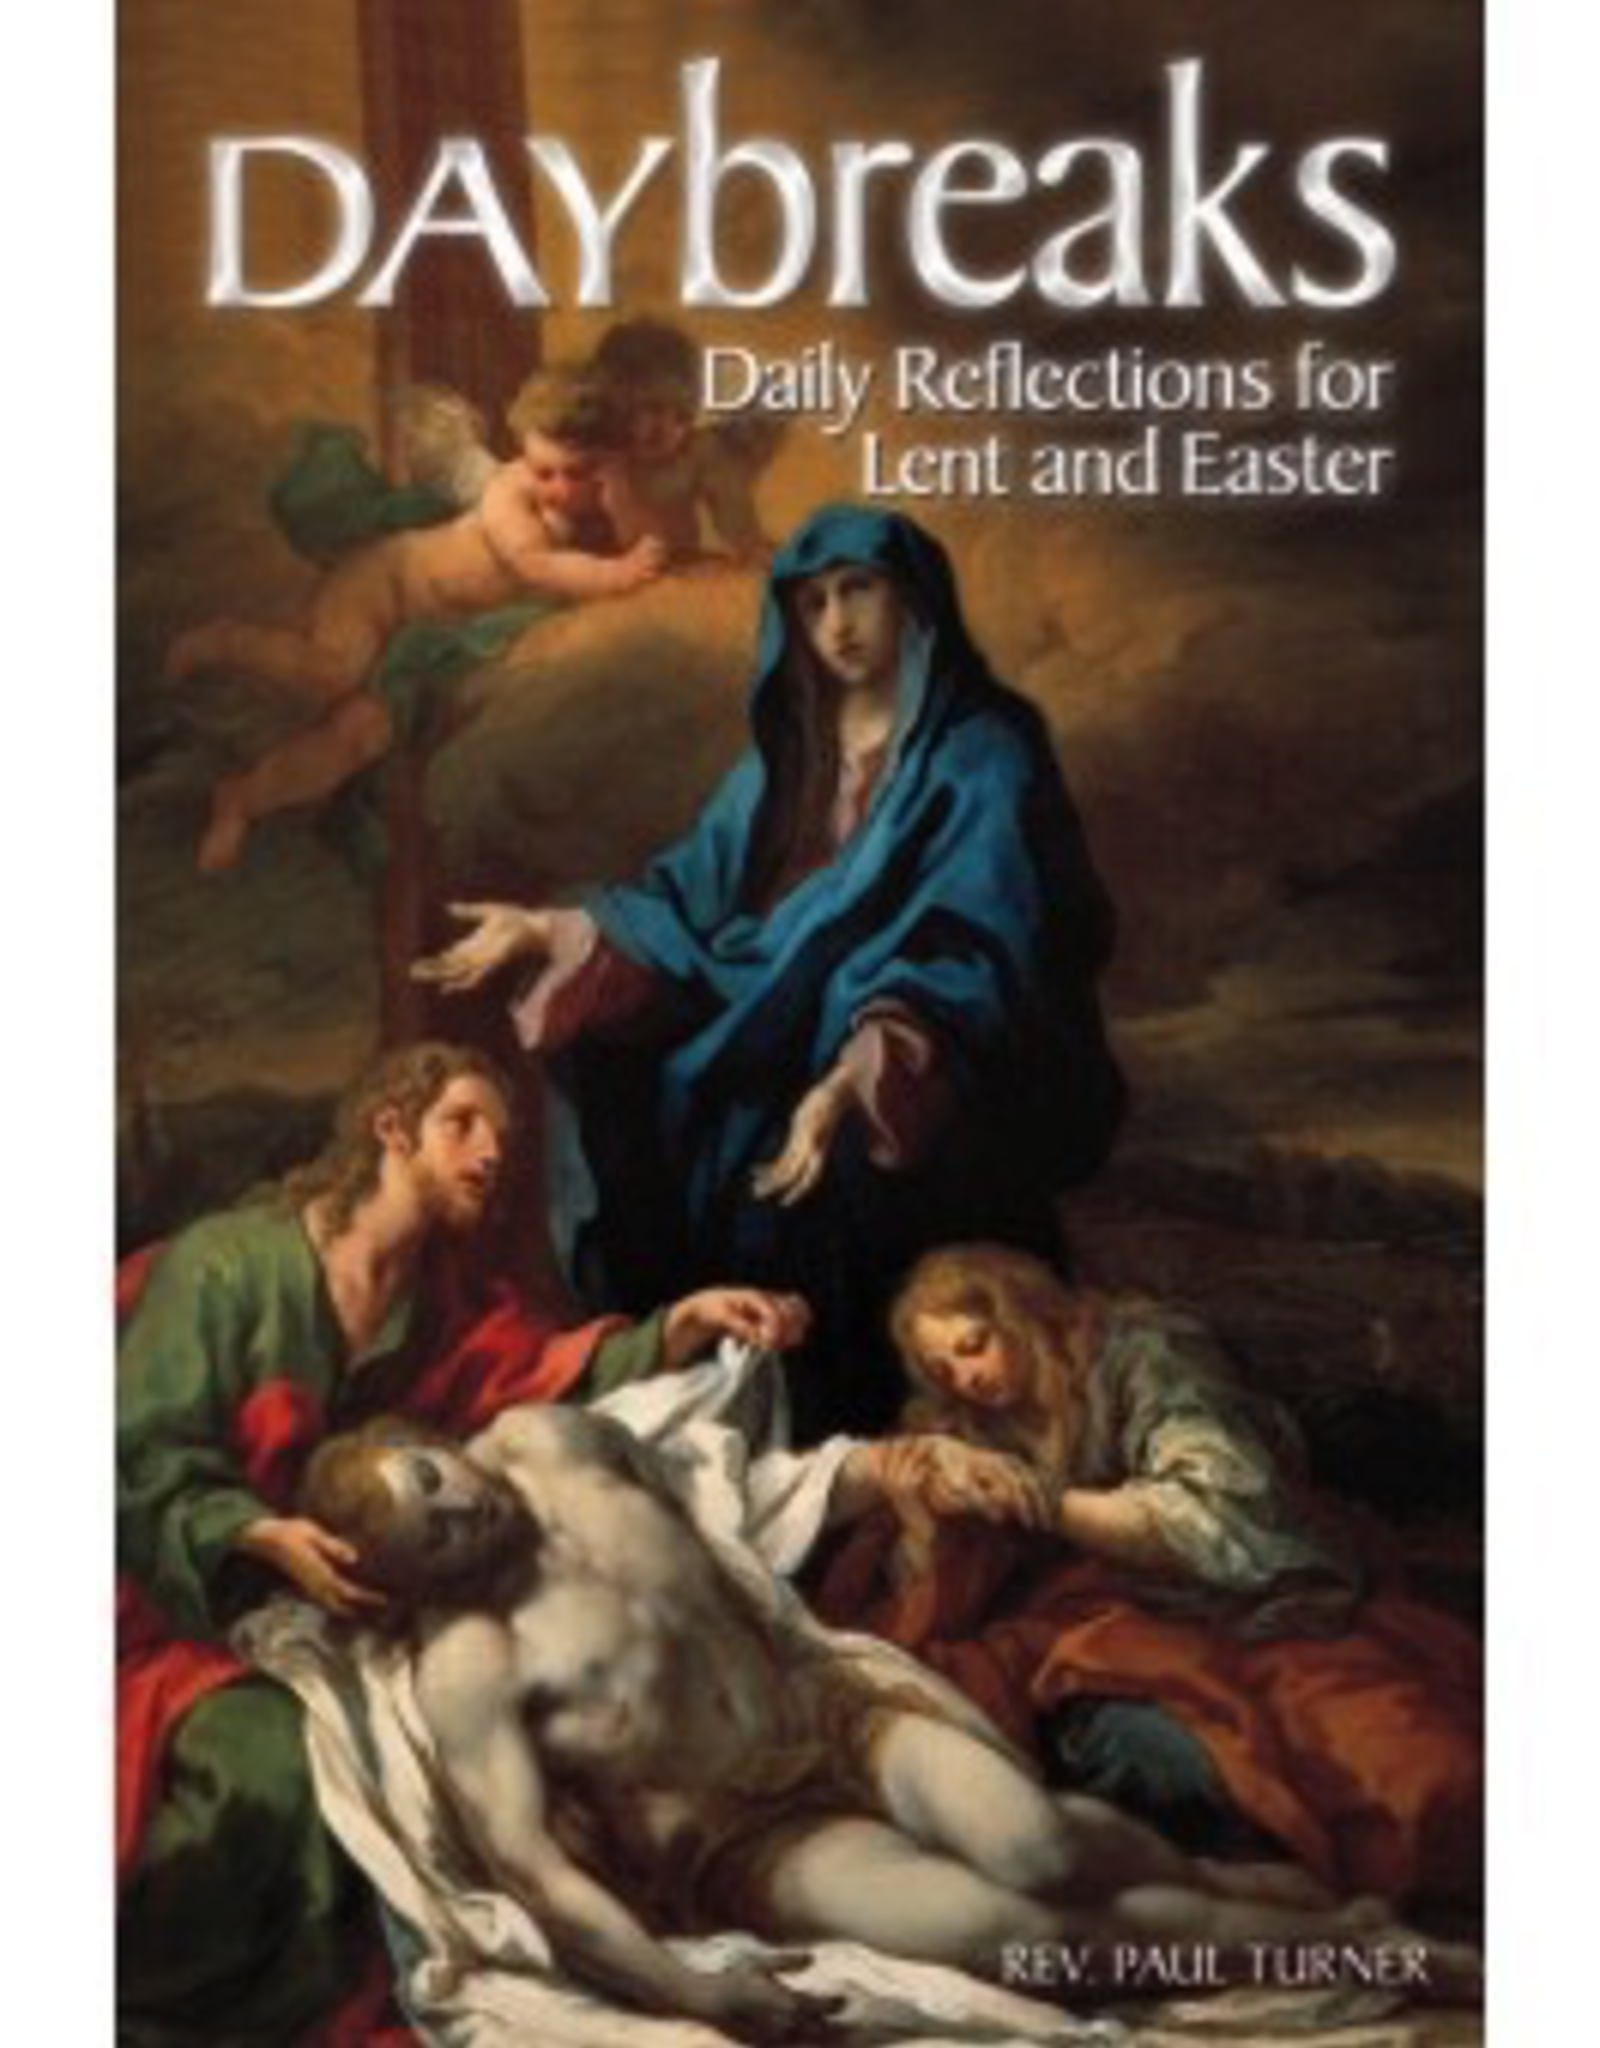 Liguori Daybreaks:  Daily reflections for Lent and Easter, by Paul Turner (pamphlet)